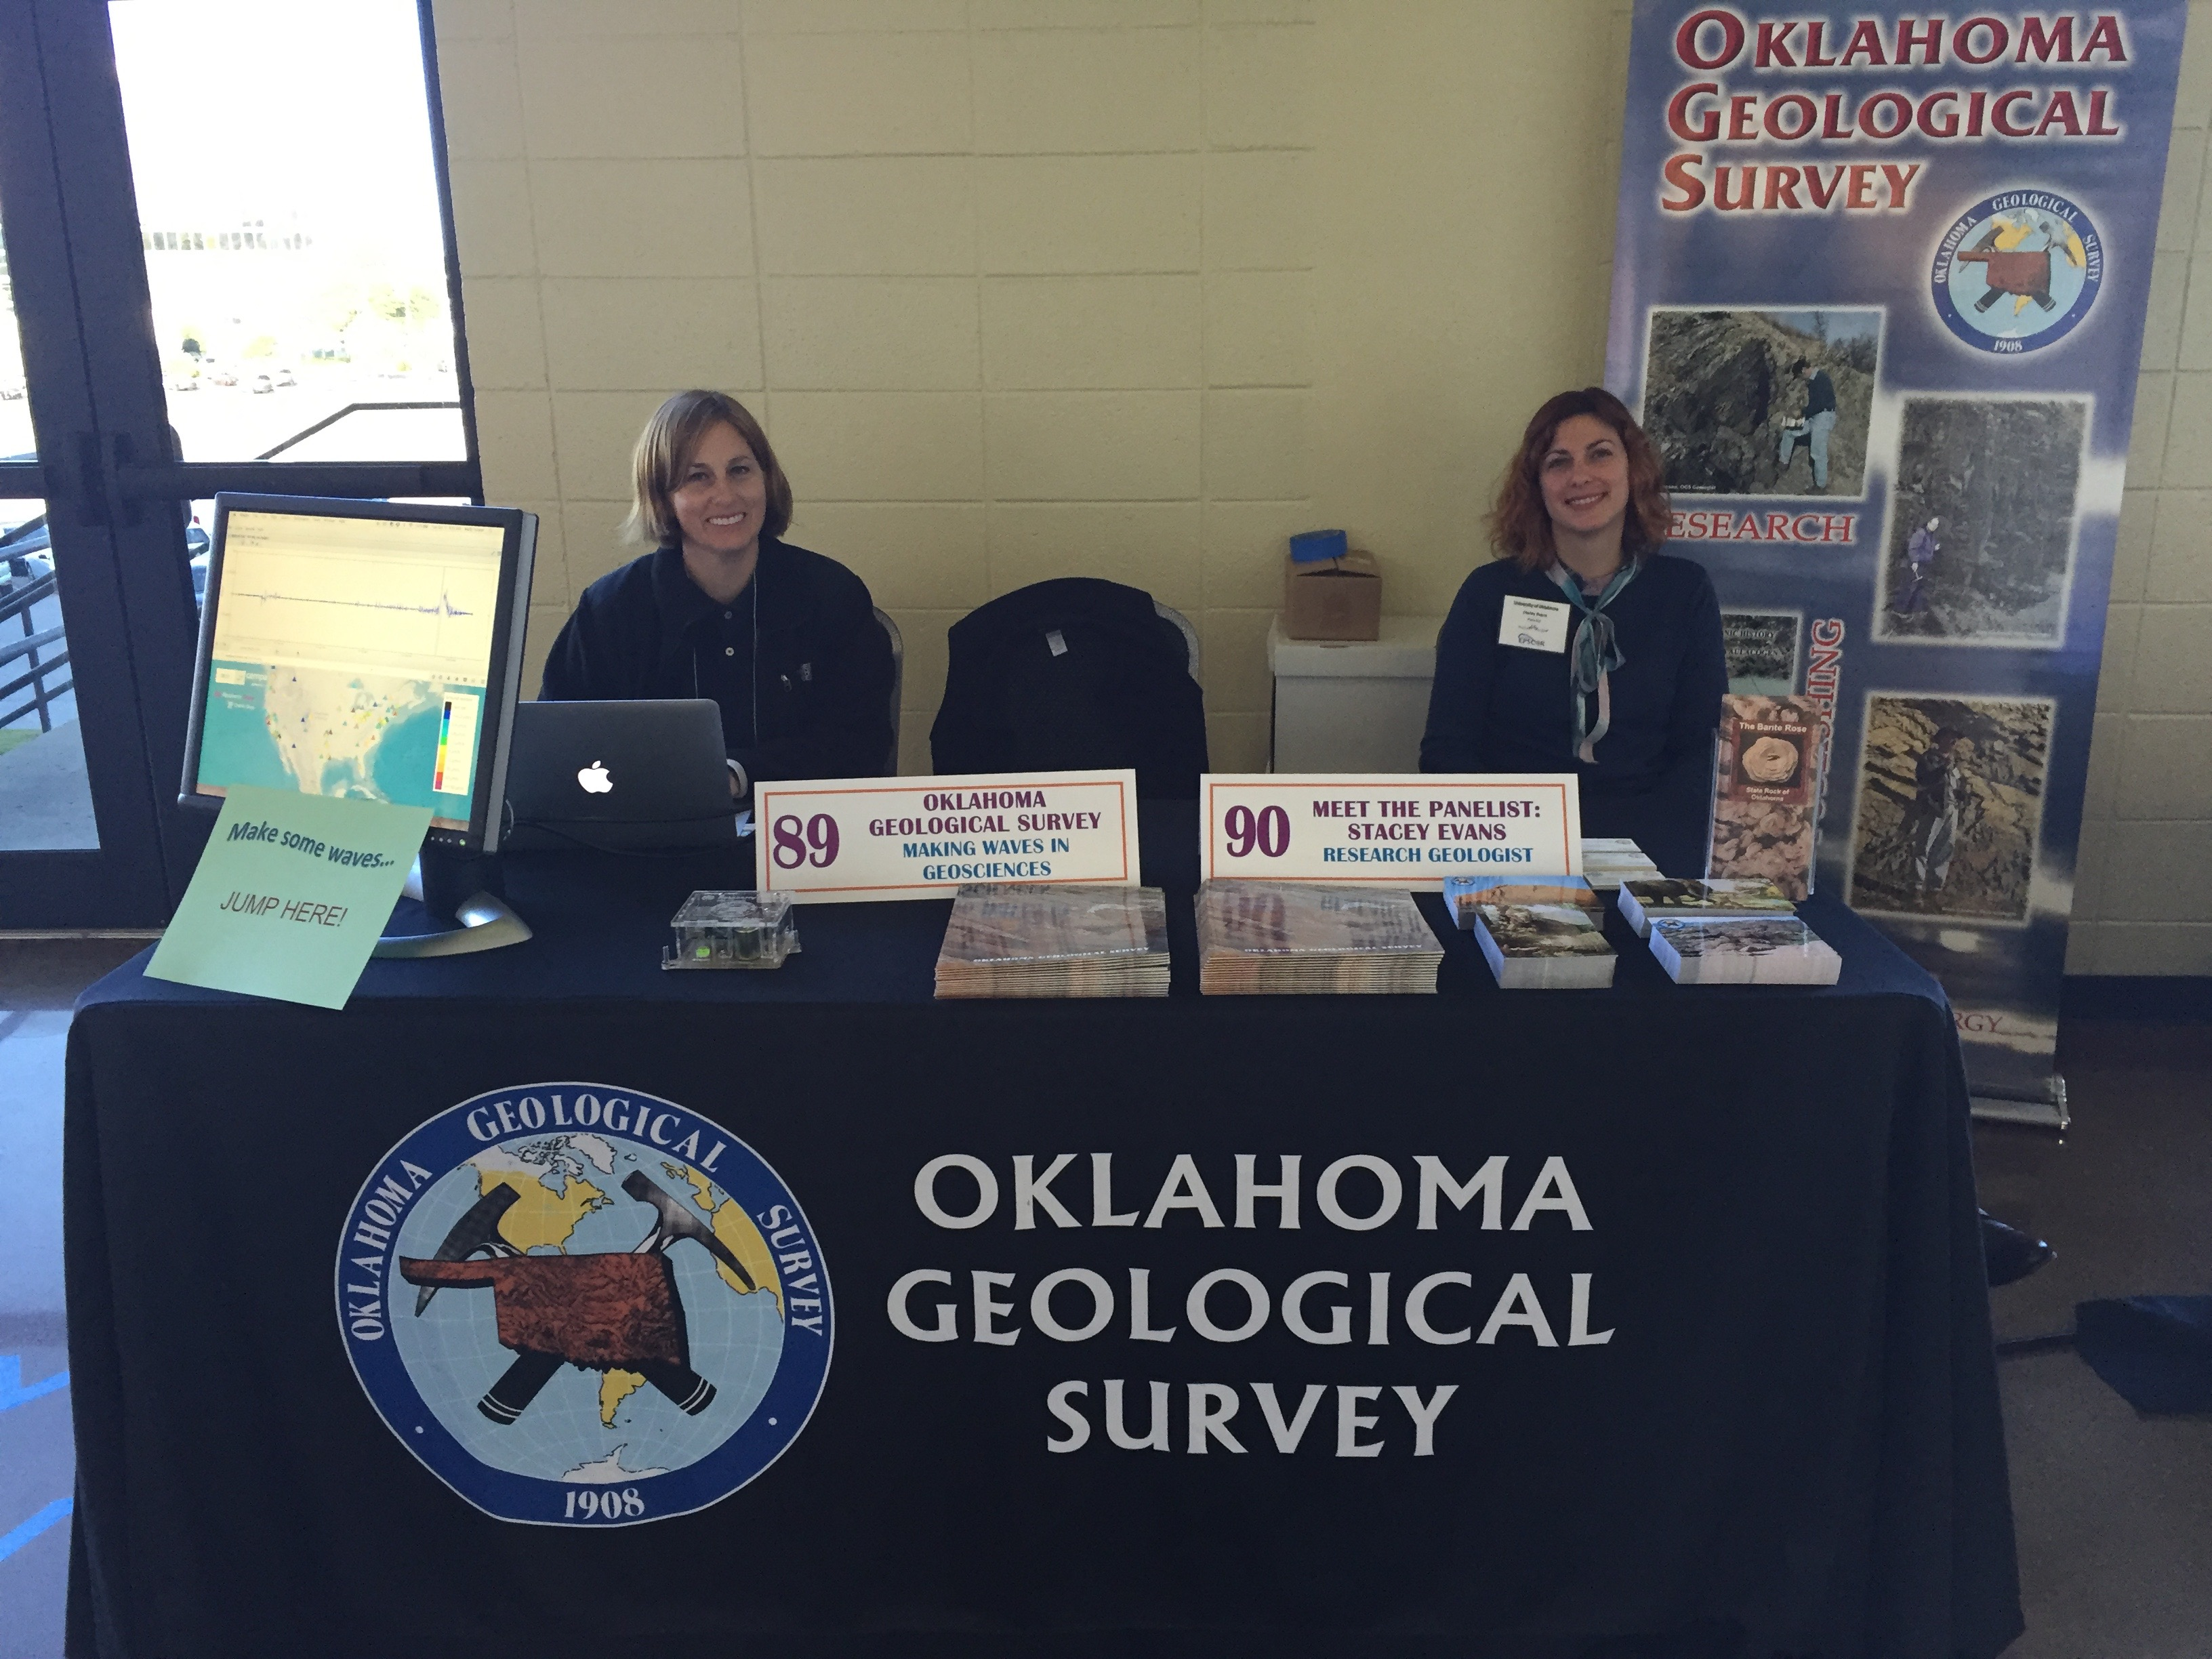 Women in Science conference, Tulsa, OK